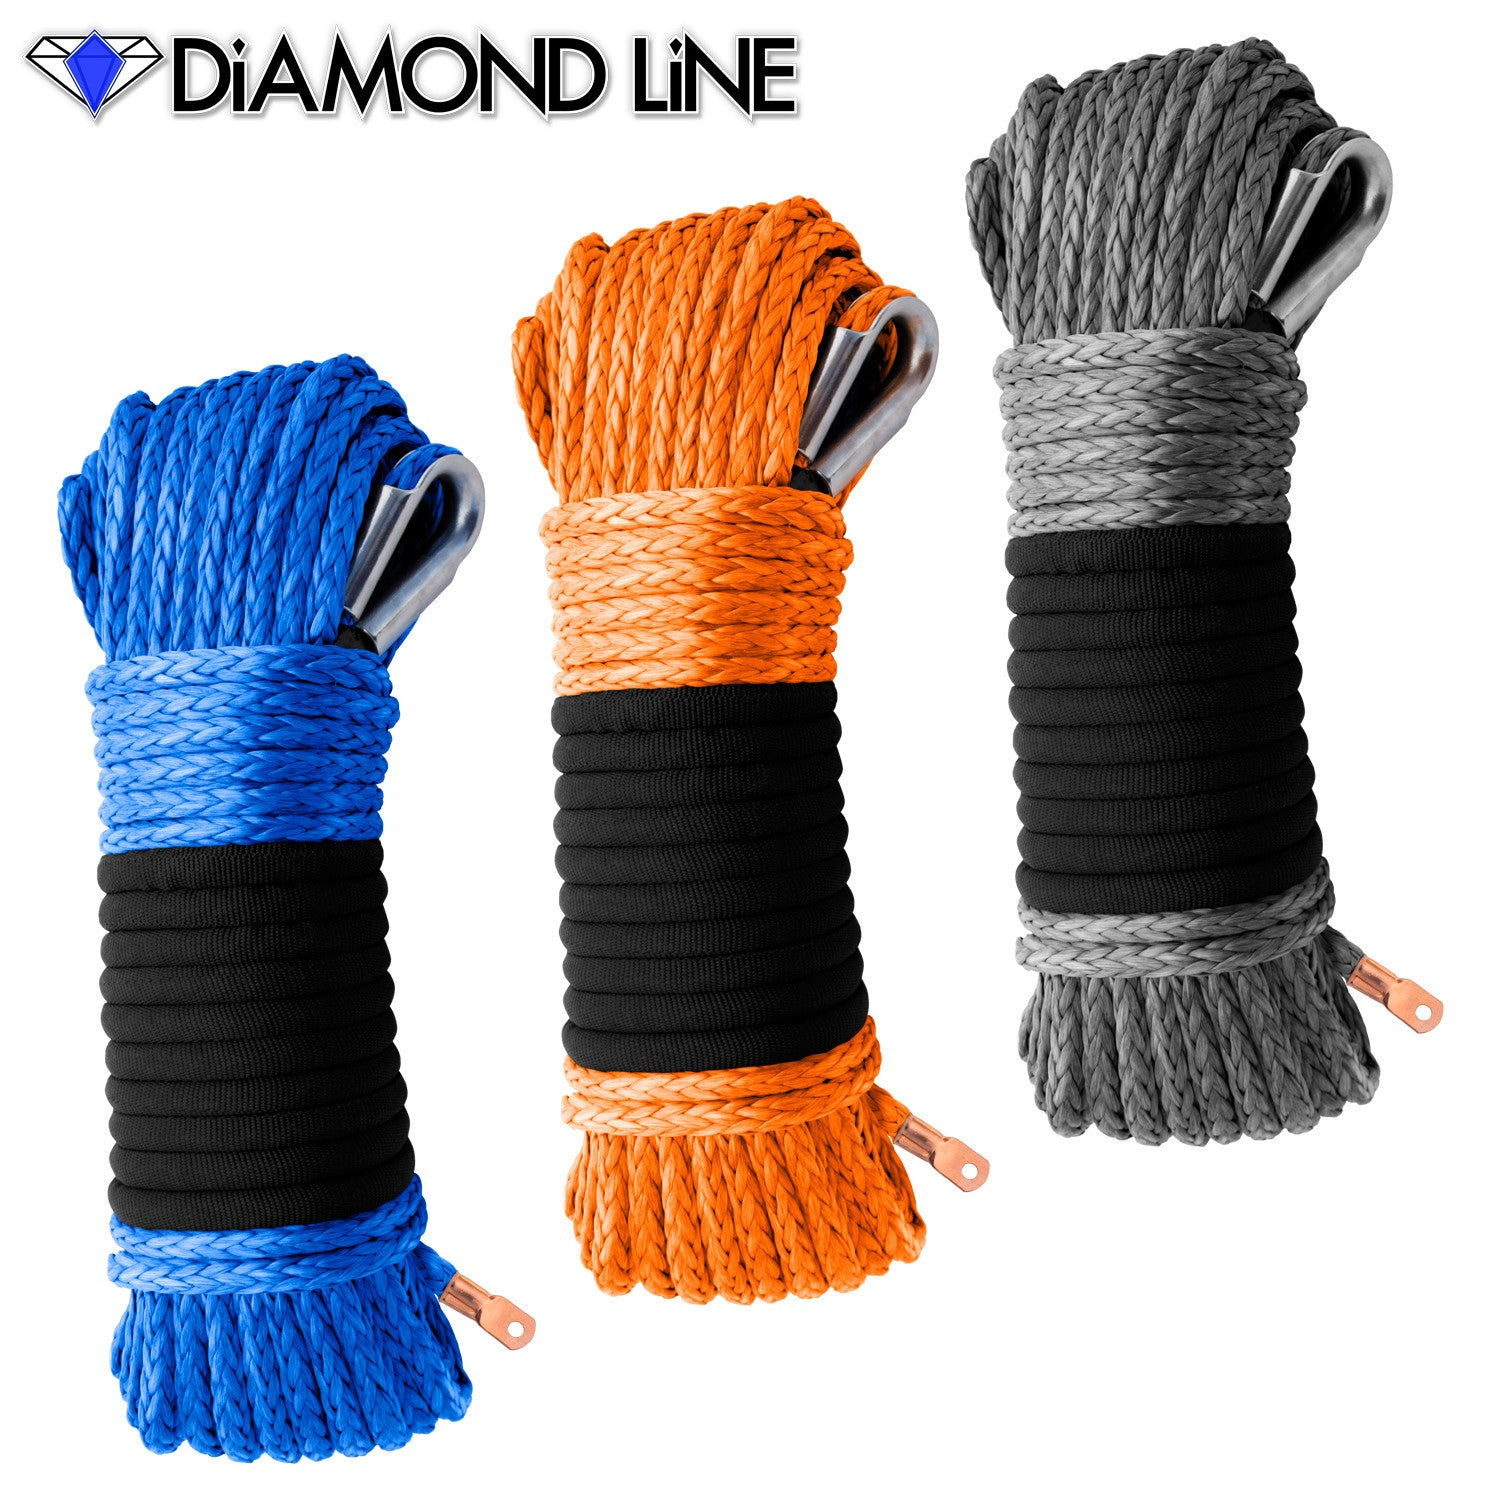 "5/16"" Diamond Line Winch Rope Mainline - Assorted Colors."